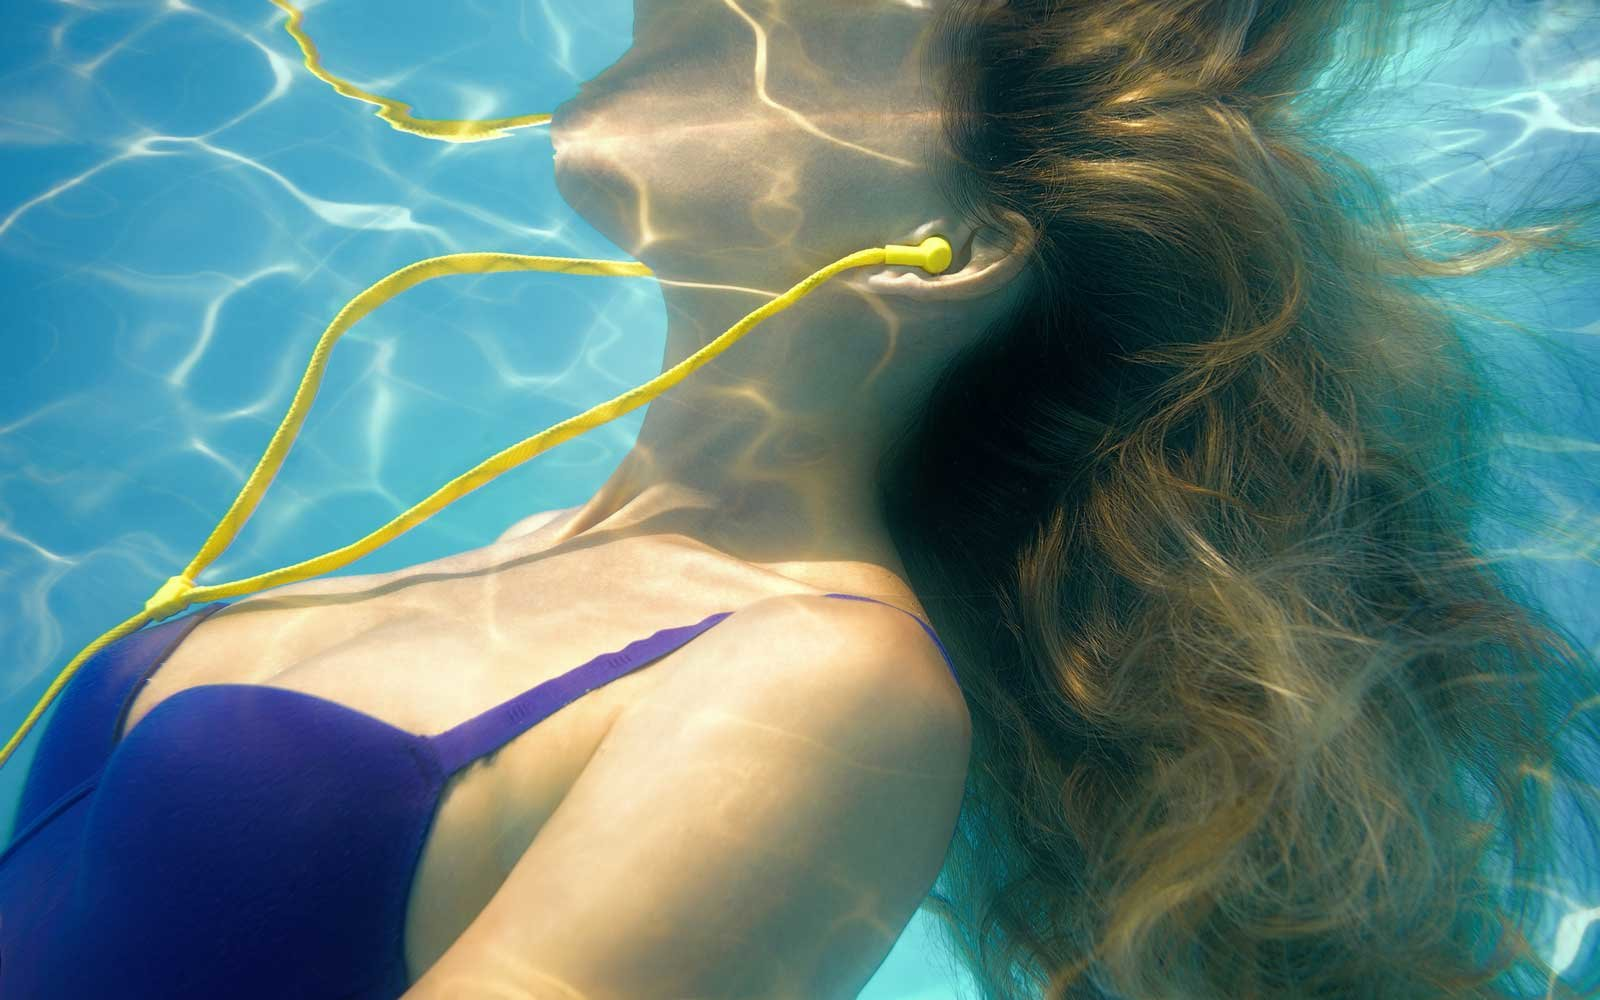 The Best Waterproof Headphones for Swimming, Water Sports, and More